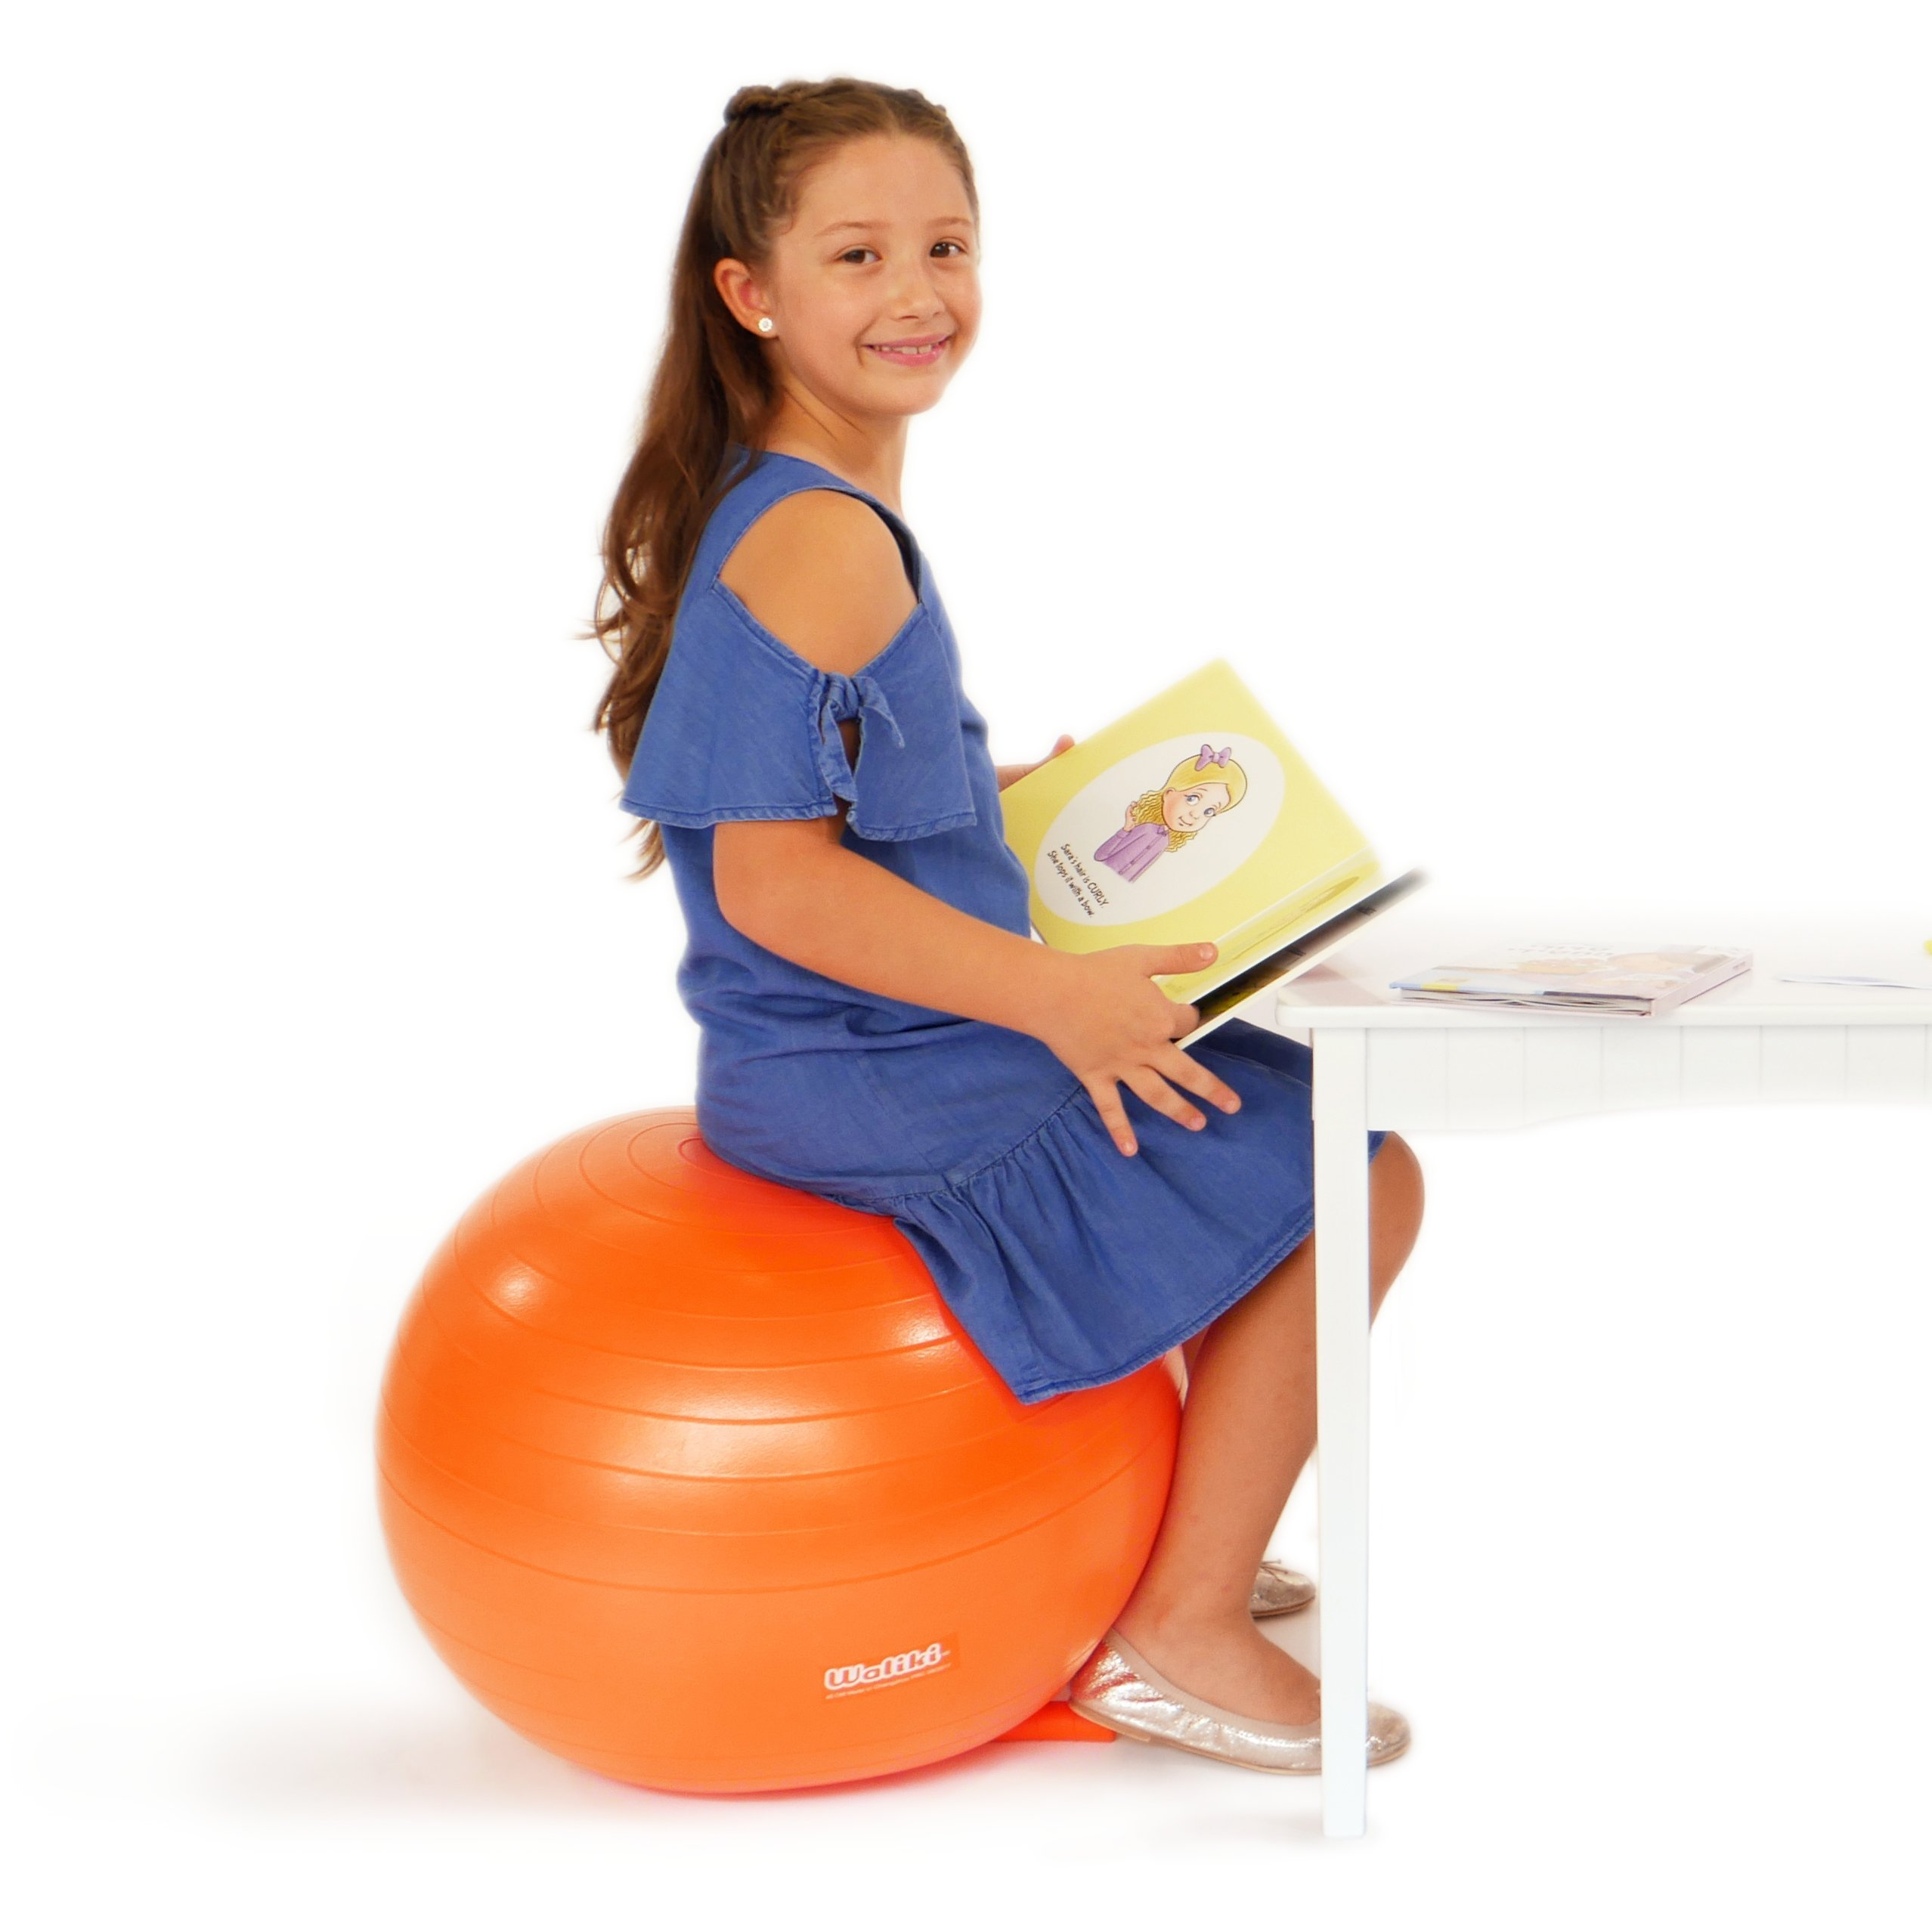 WALIKI TOYS Children's Chair Ball with Feet, Alternative Classroom Seating (Inflatable Balance Ball Chair With Stability Legs for School, Pump Included, 18''/45CM, Orange) by WALIKI (Image #4)